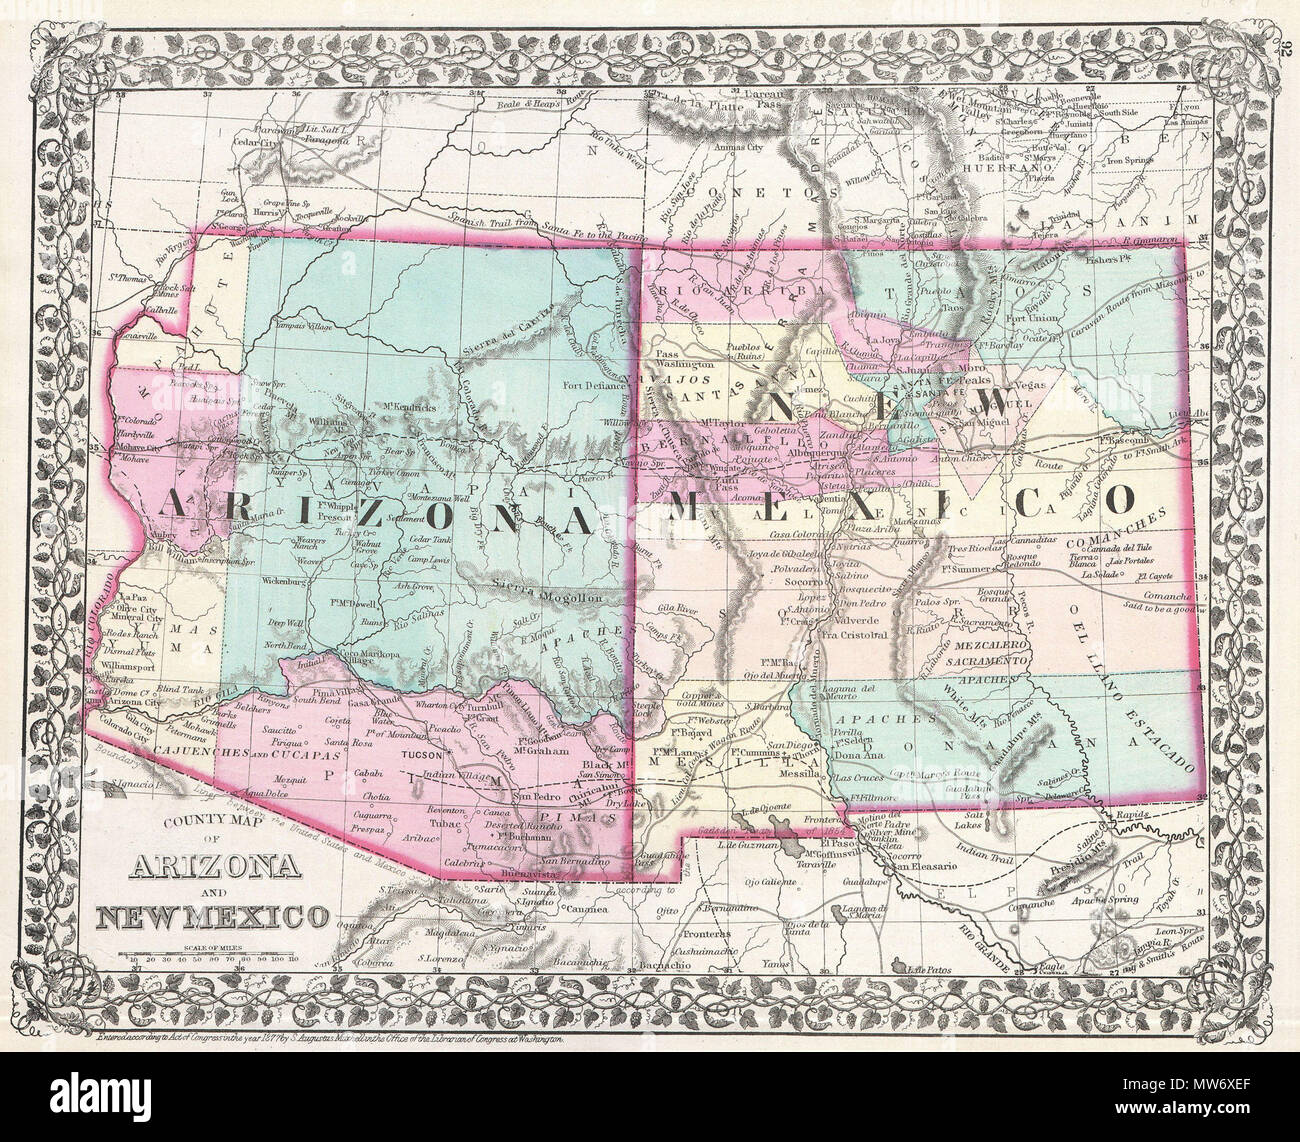 Map Of Arizona Indian Tribes.County Map Of Arizona And New Mexico English A Beautiful Example